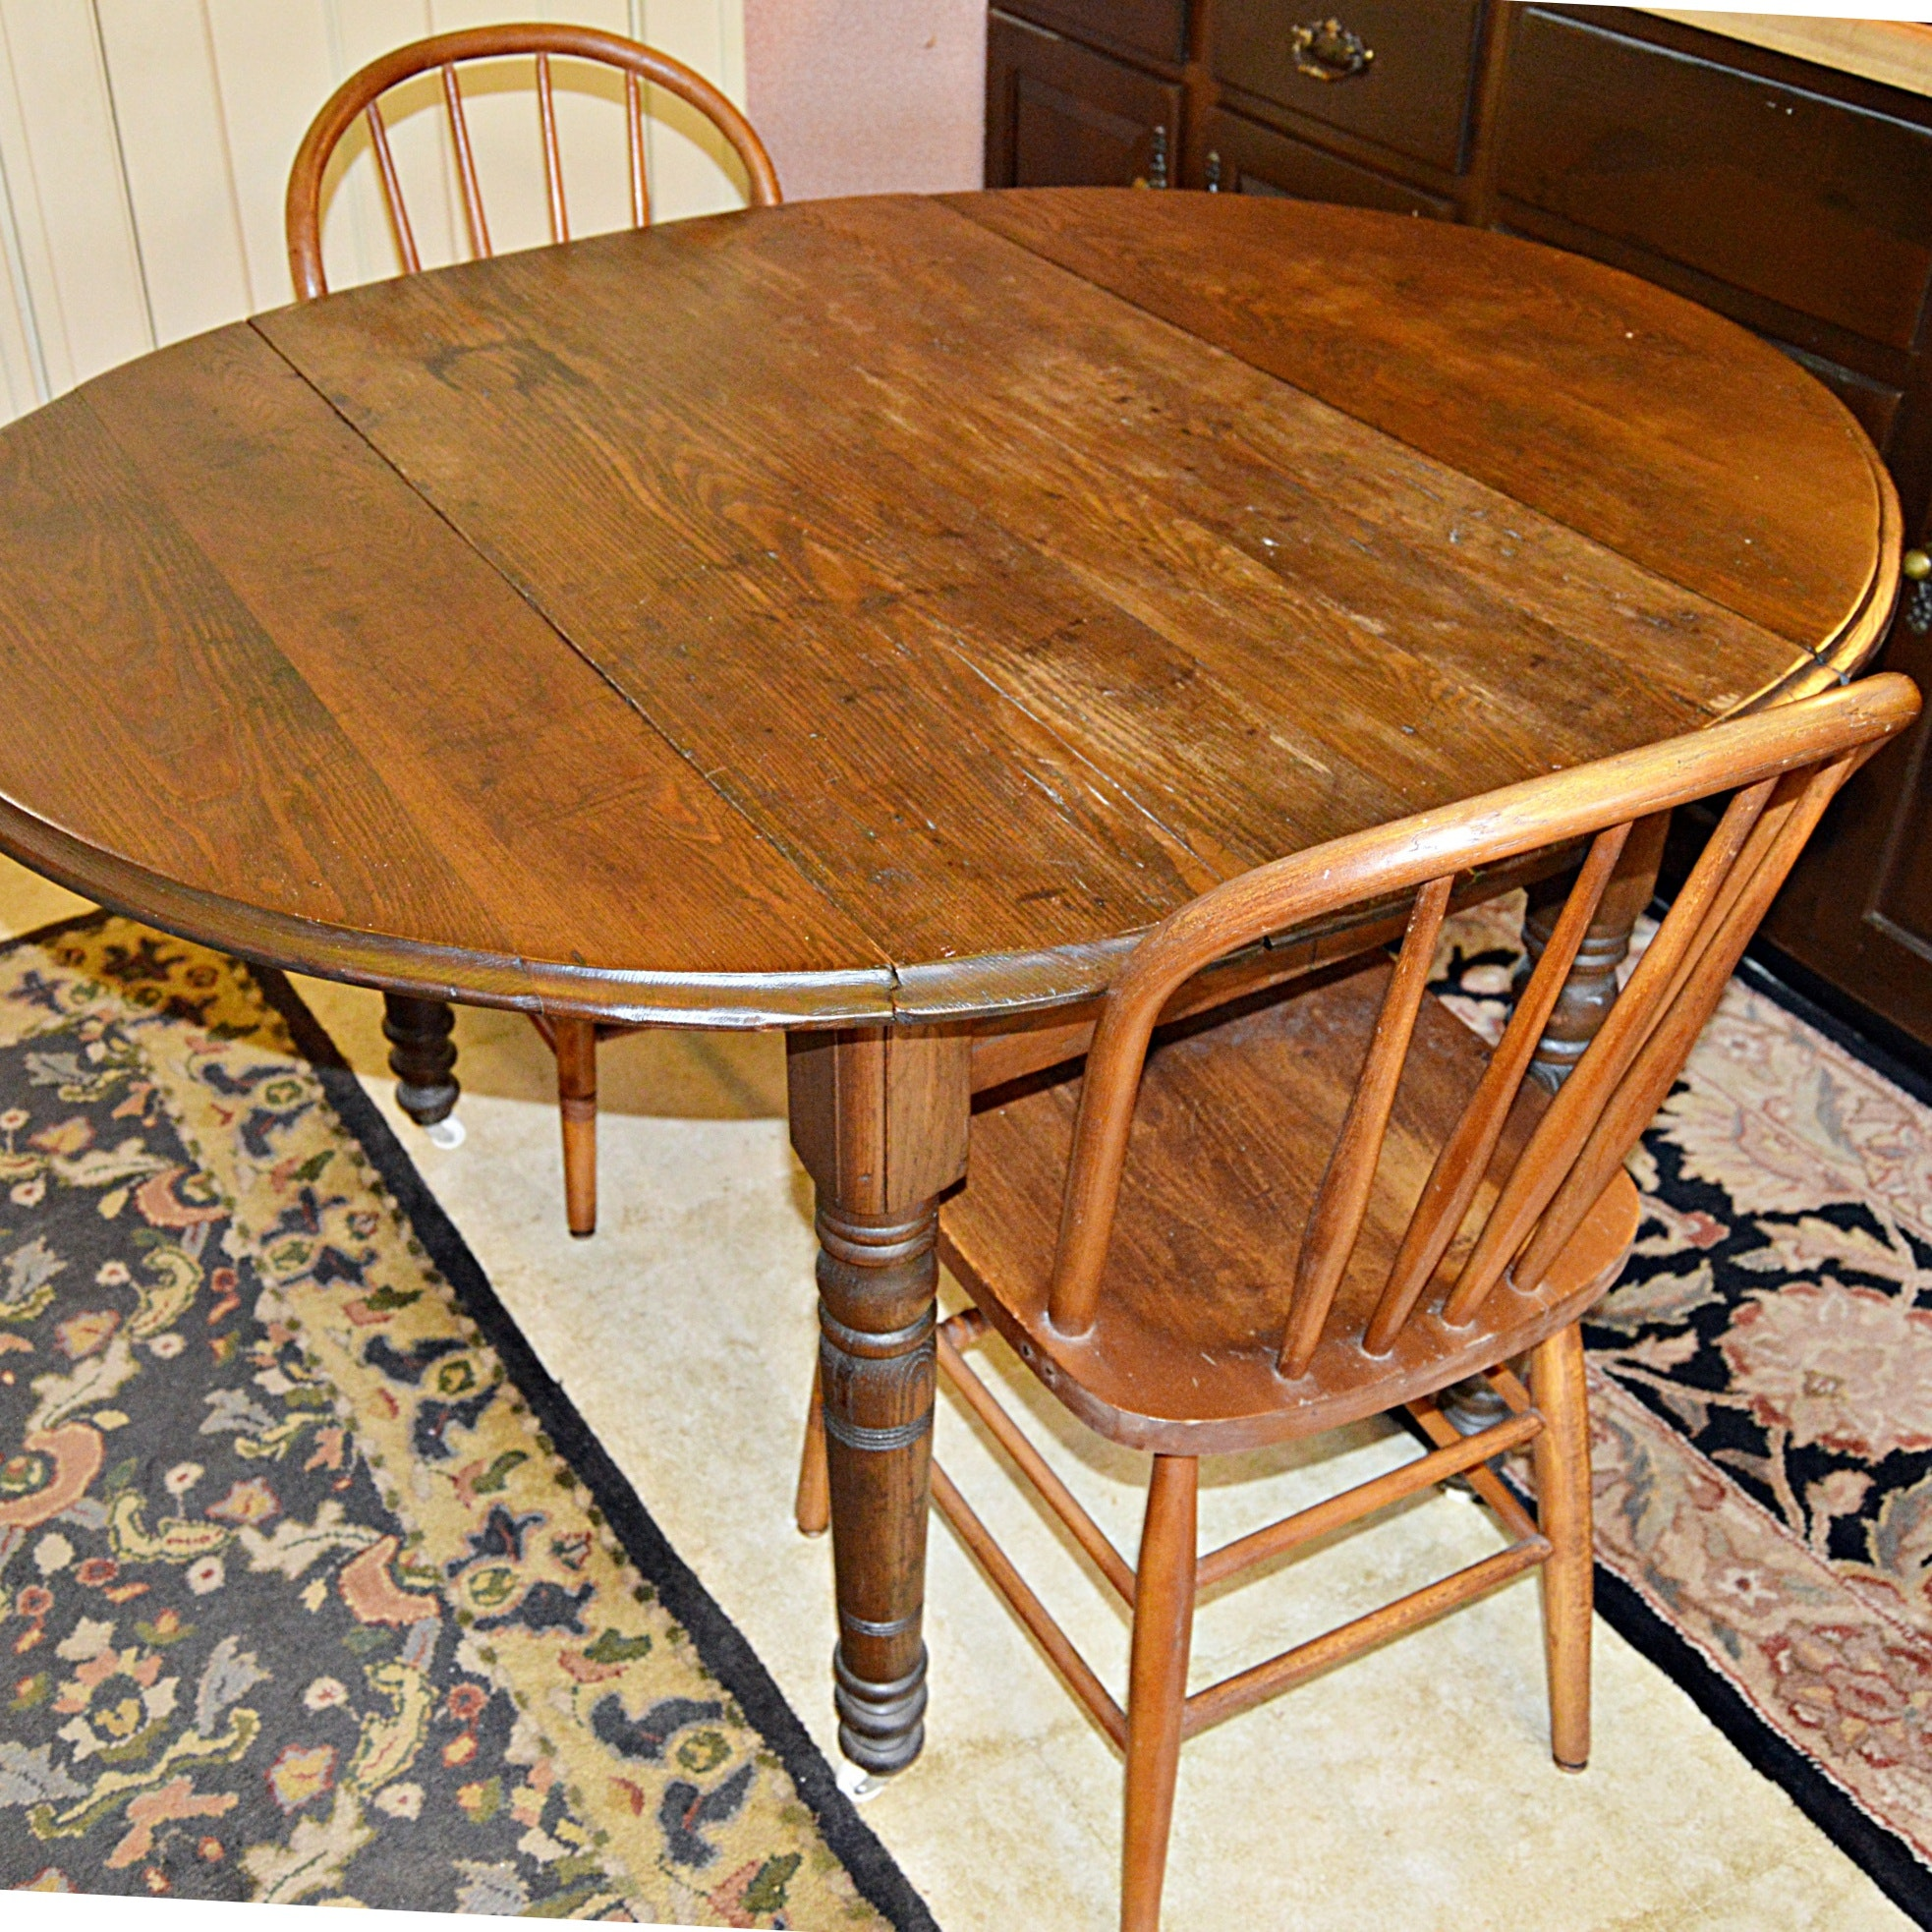 Antique Pine Table and Two Windsor Chairs